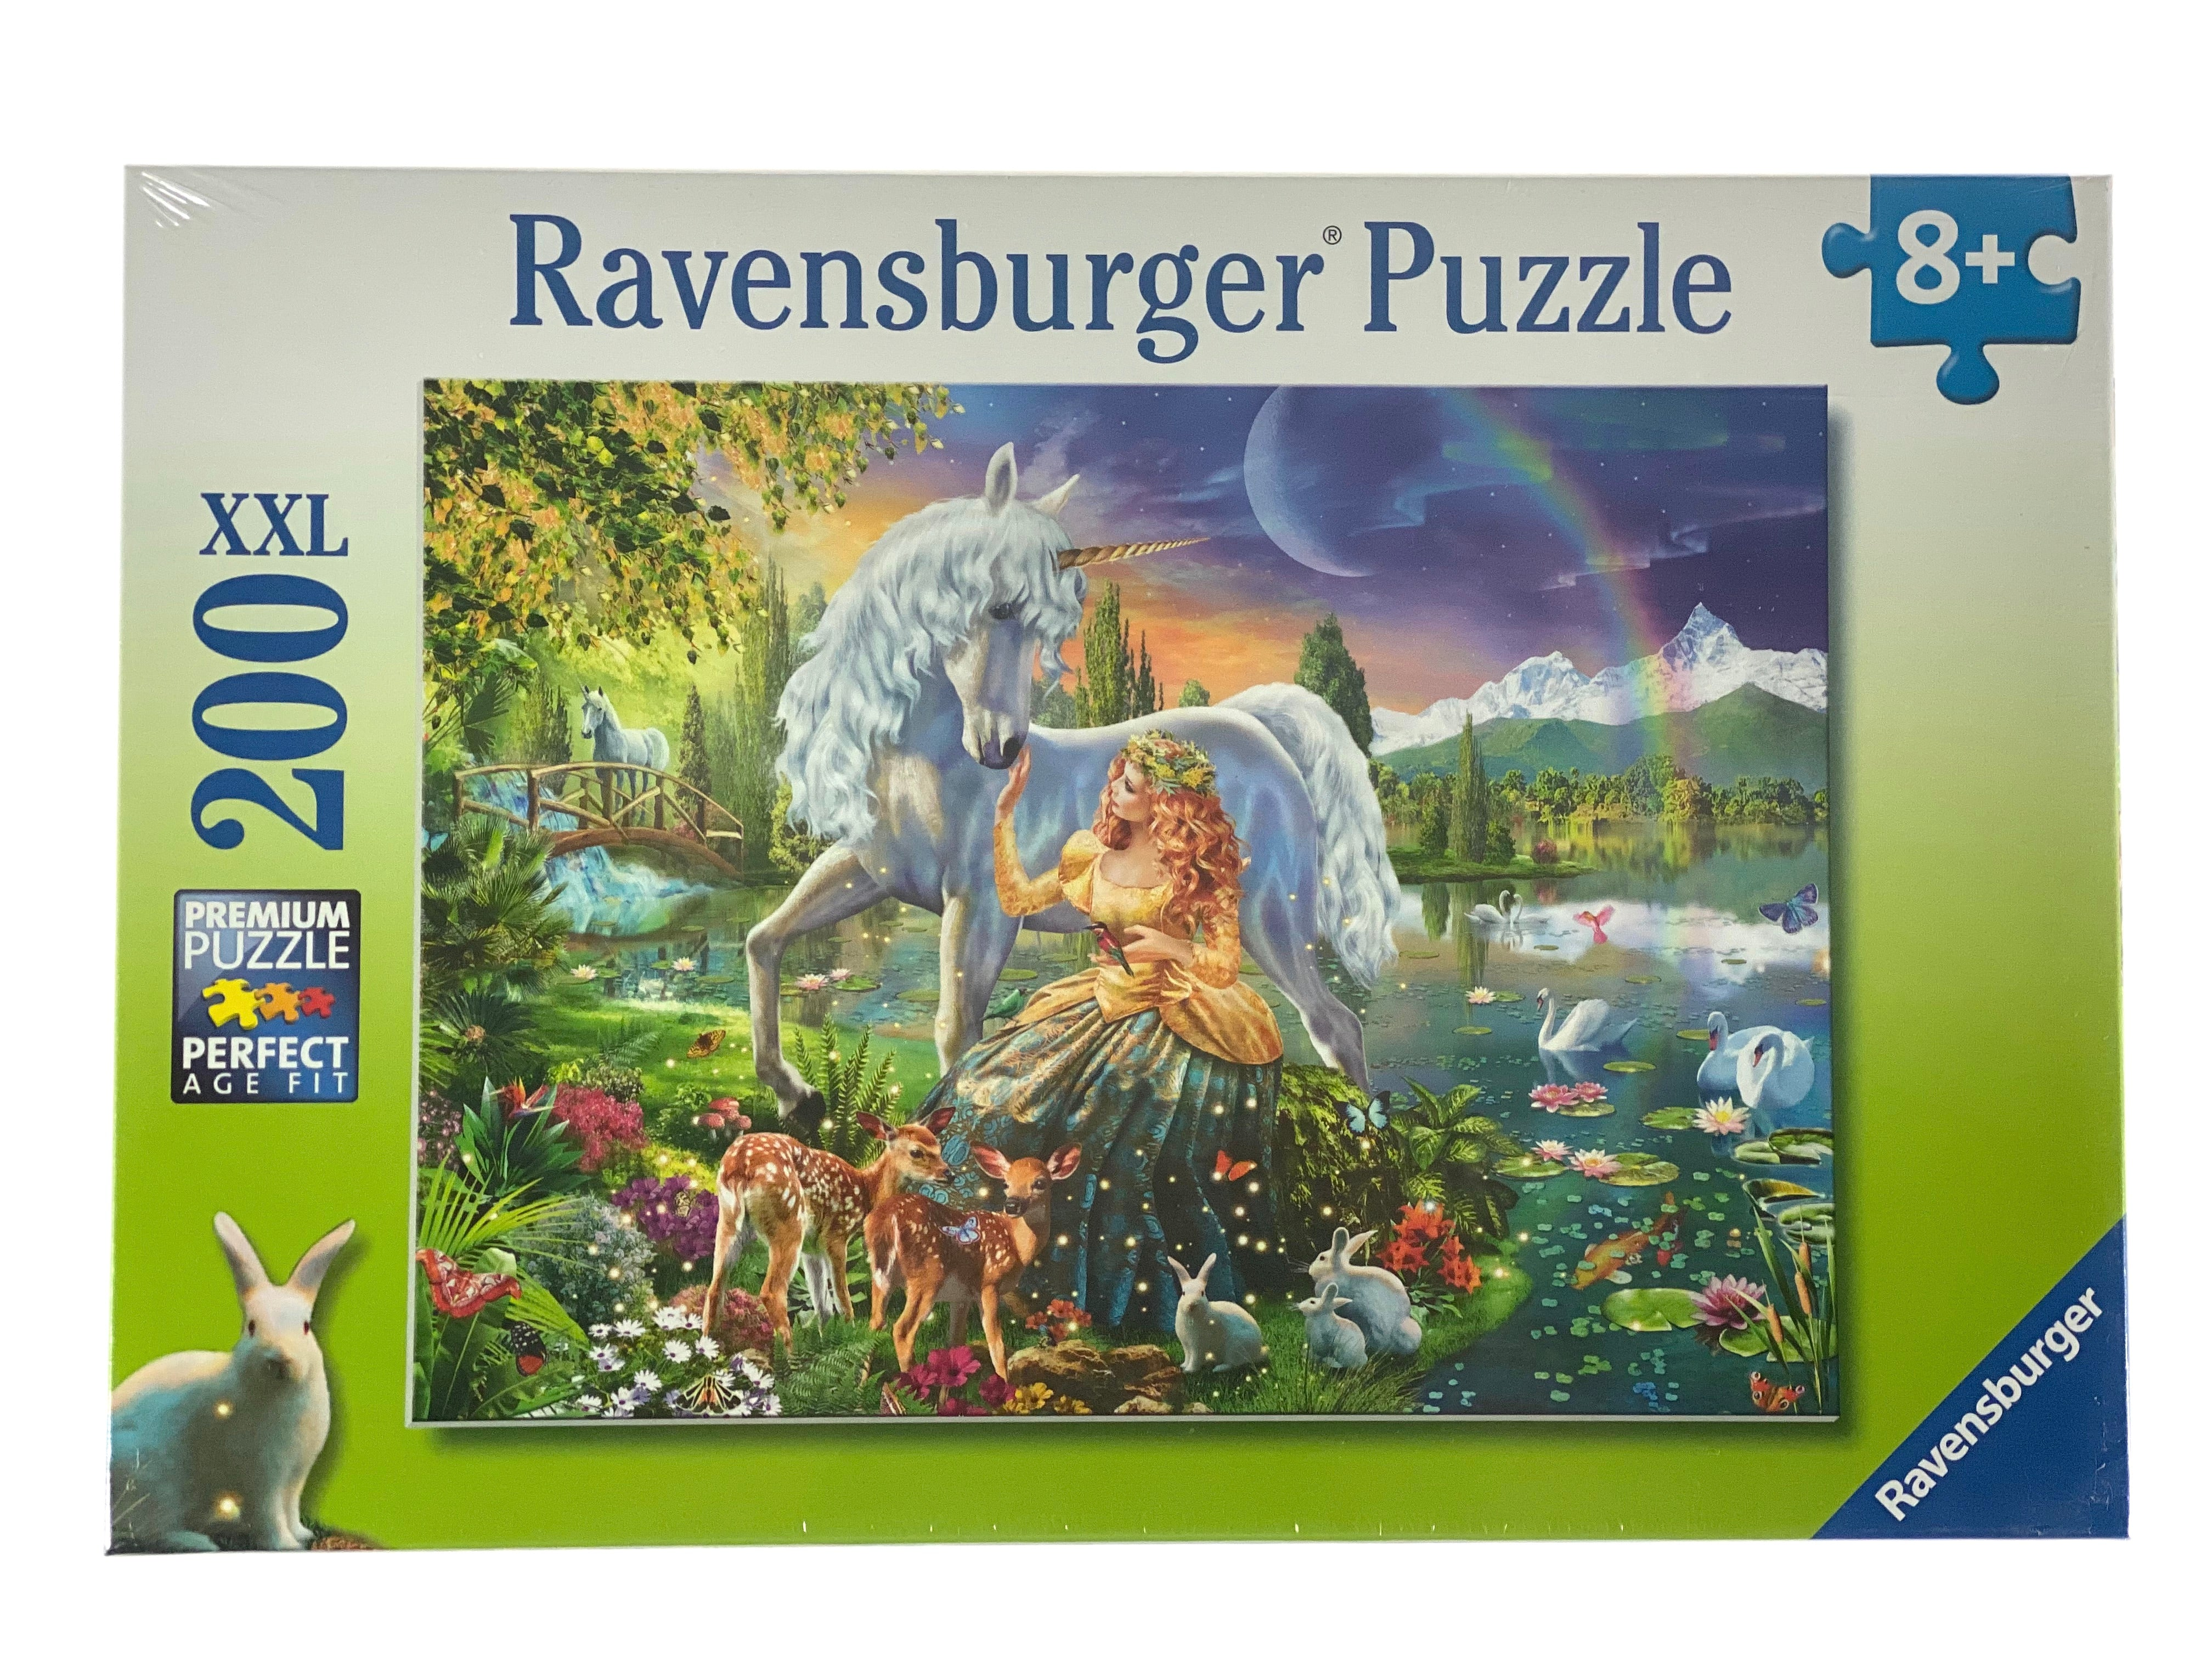 Gathering at Twilight 200 Piece Puzzle